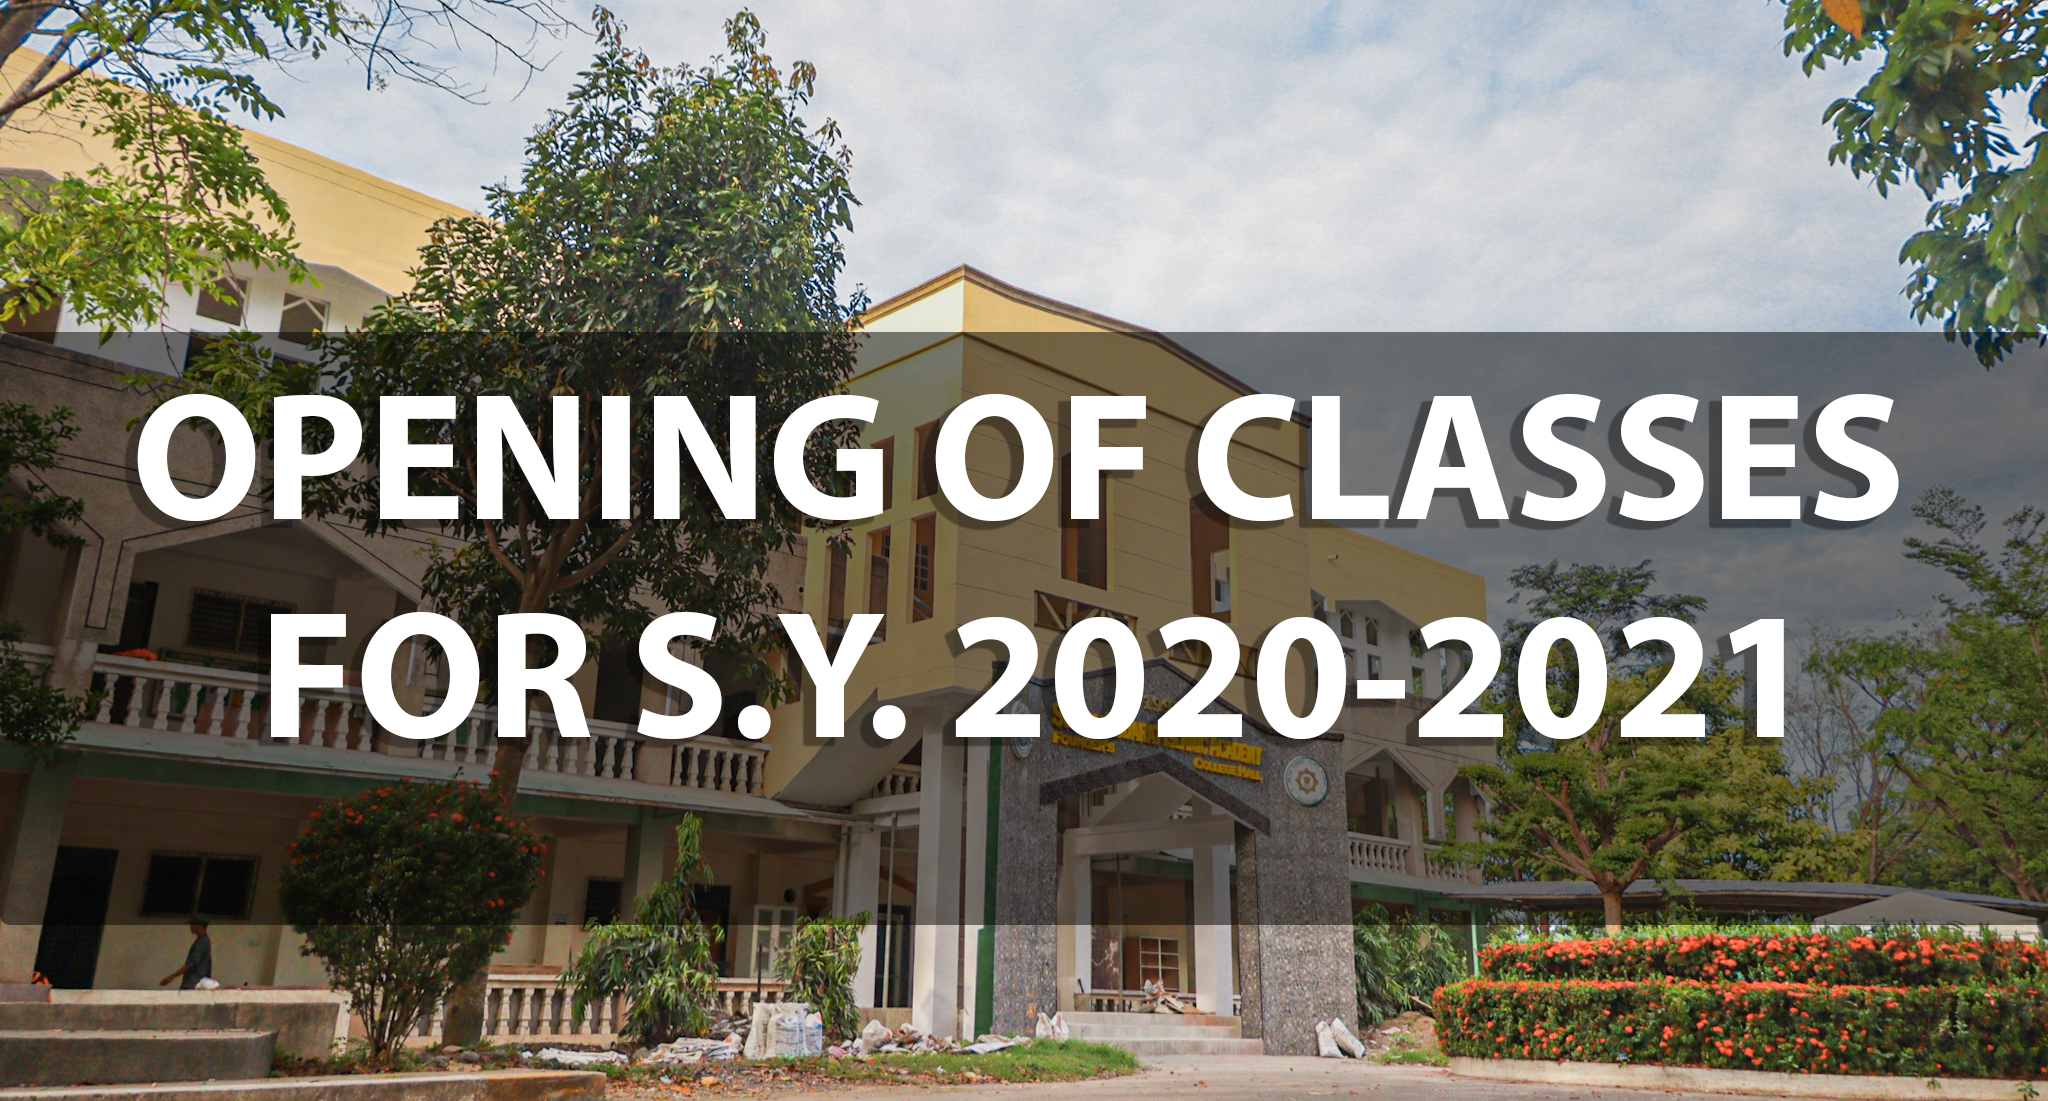 SKIA OFFICIAL STATEMENT ON THE OPENING OF CLASSES FOR S.Y. 2020-2021